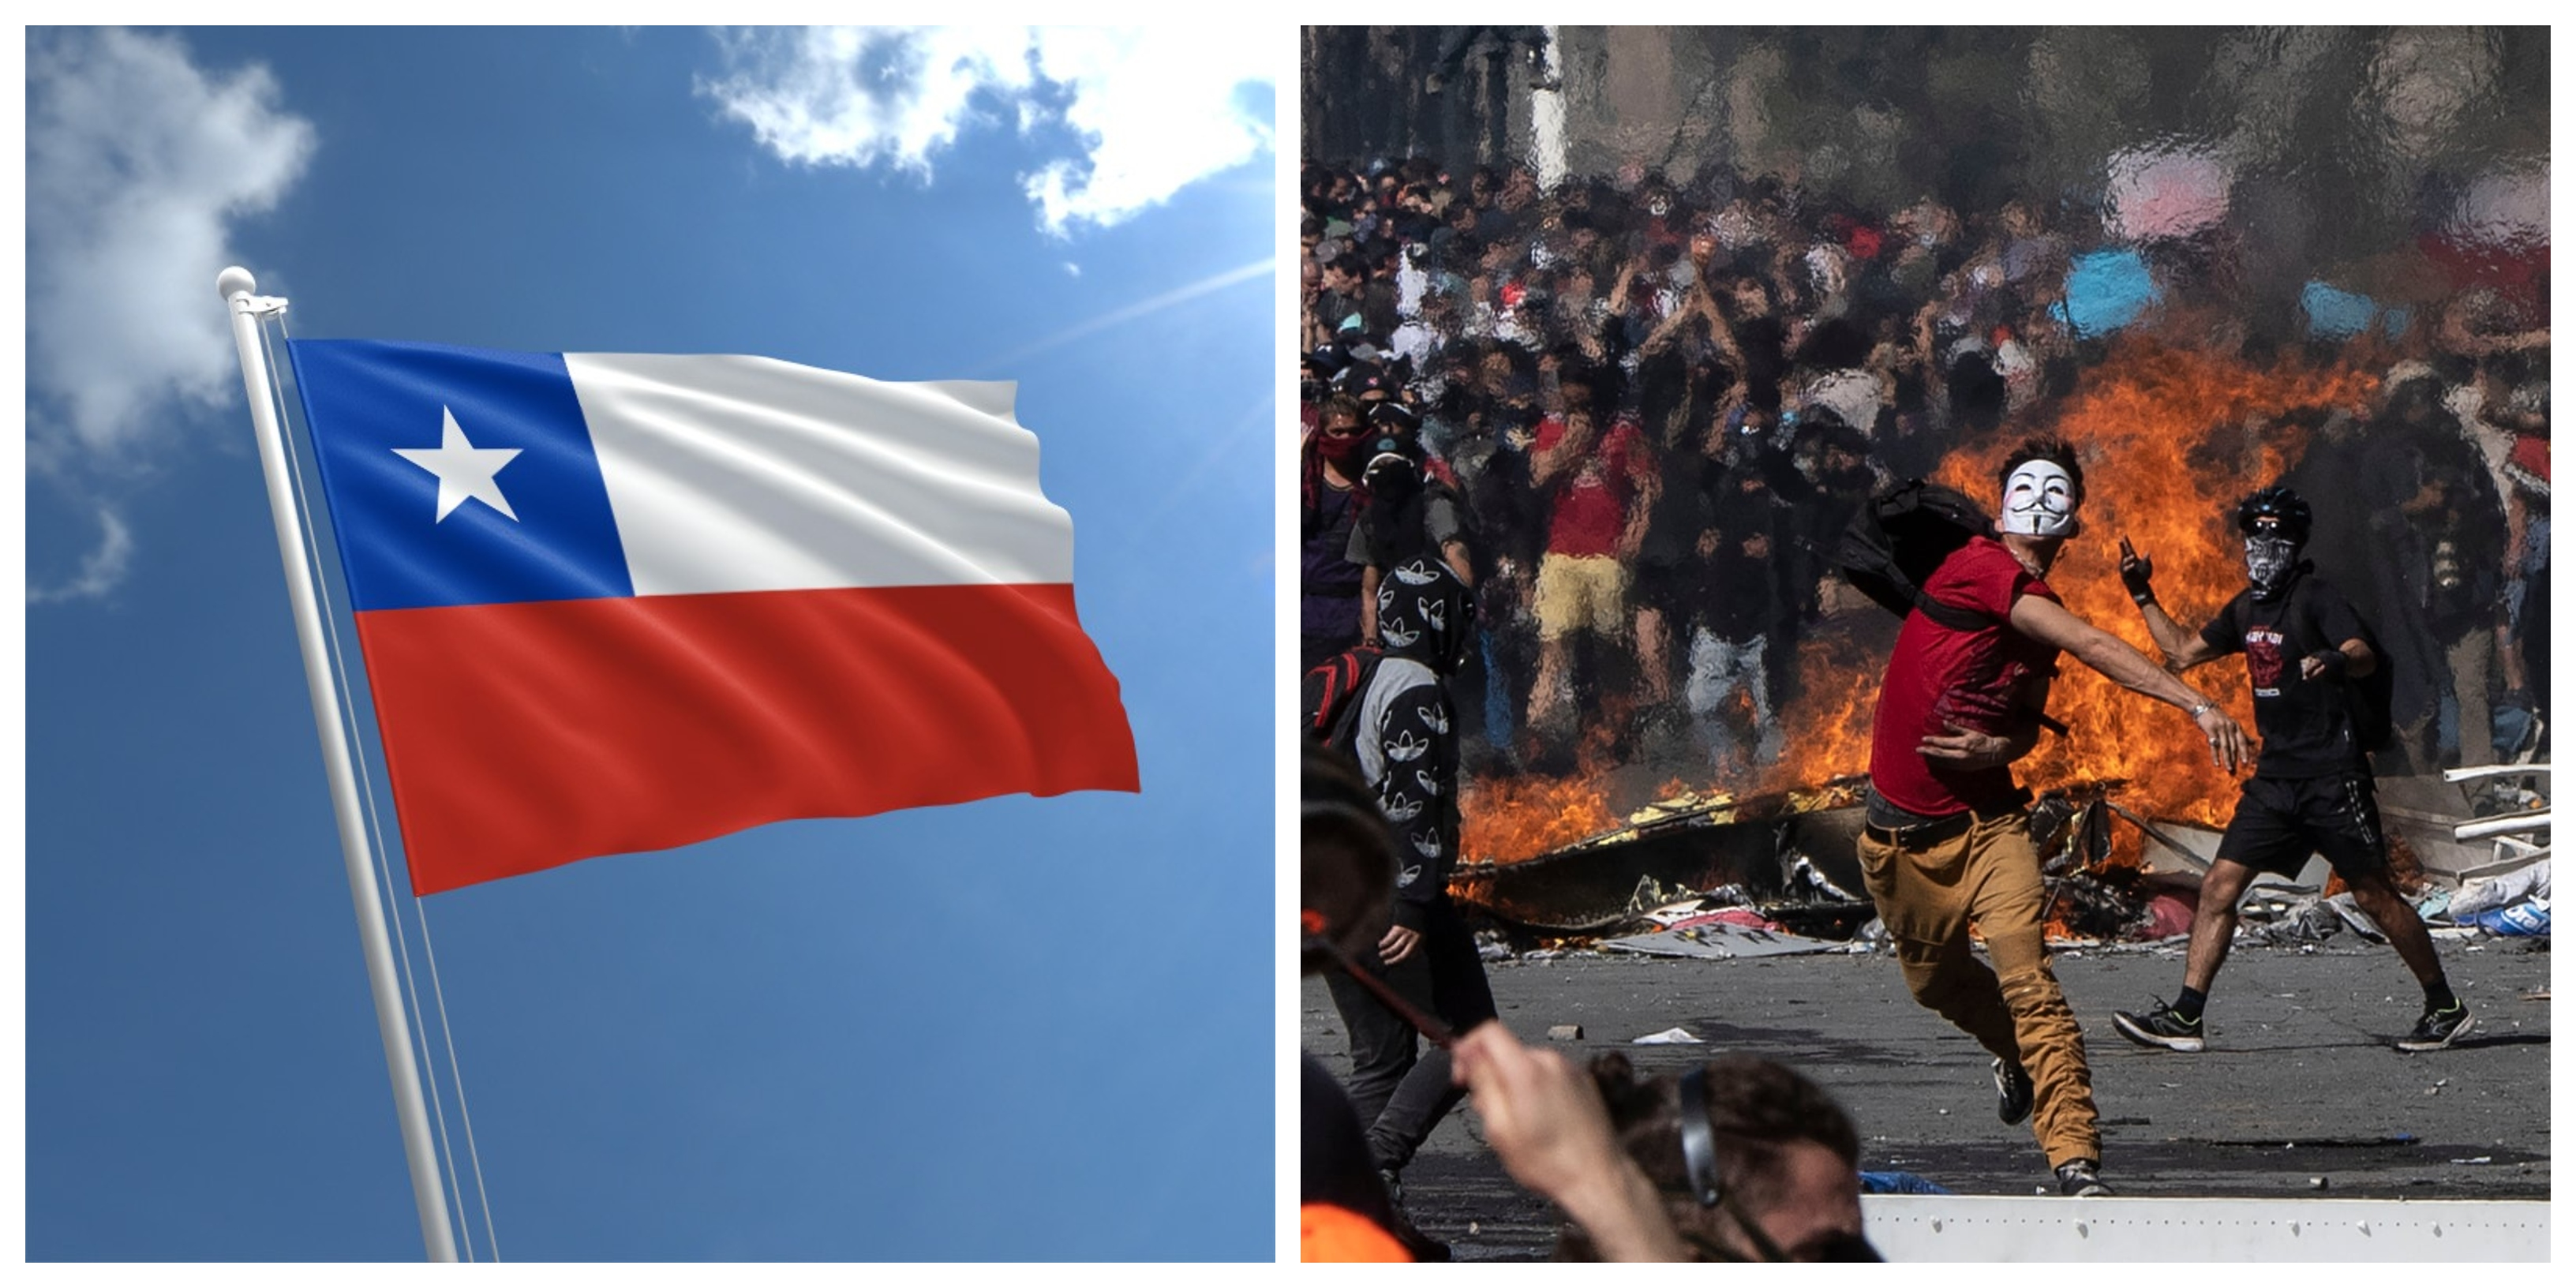 Chile Crisis collage photo riots